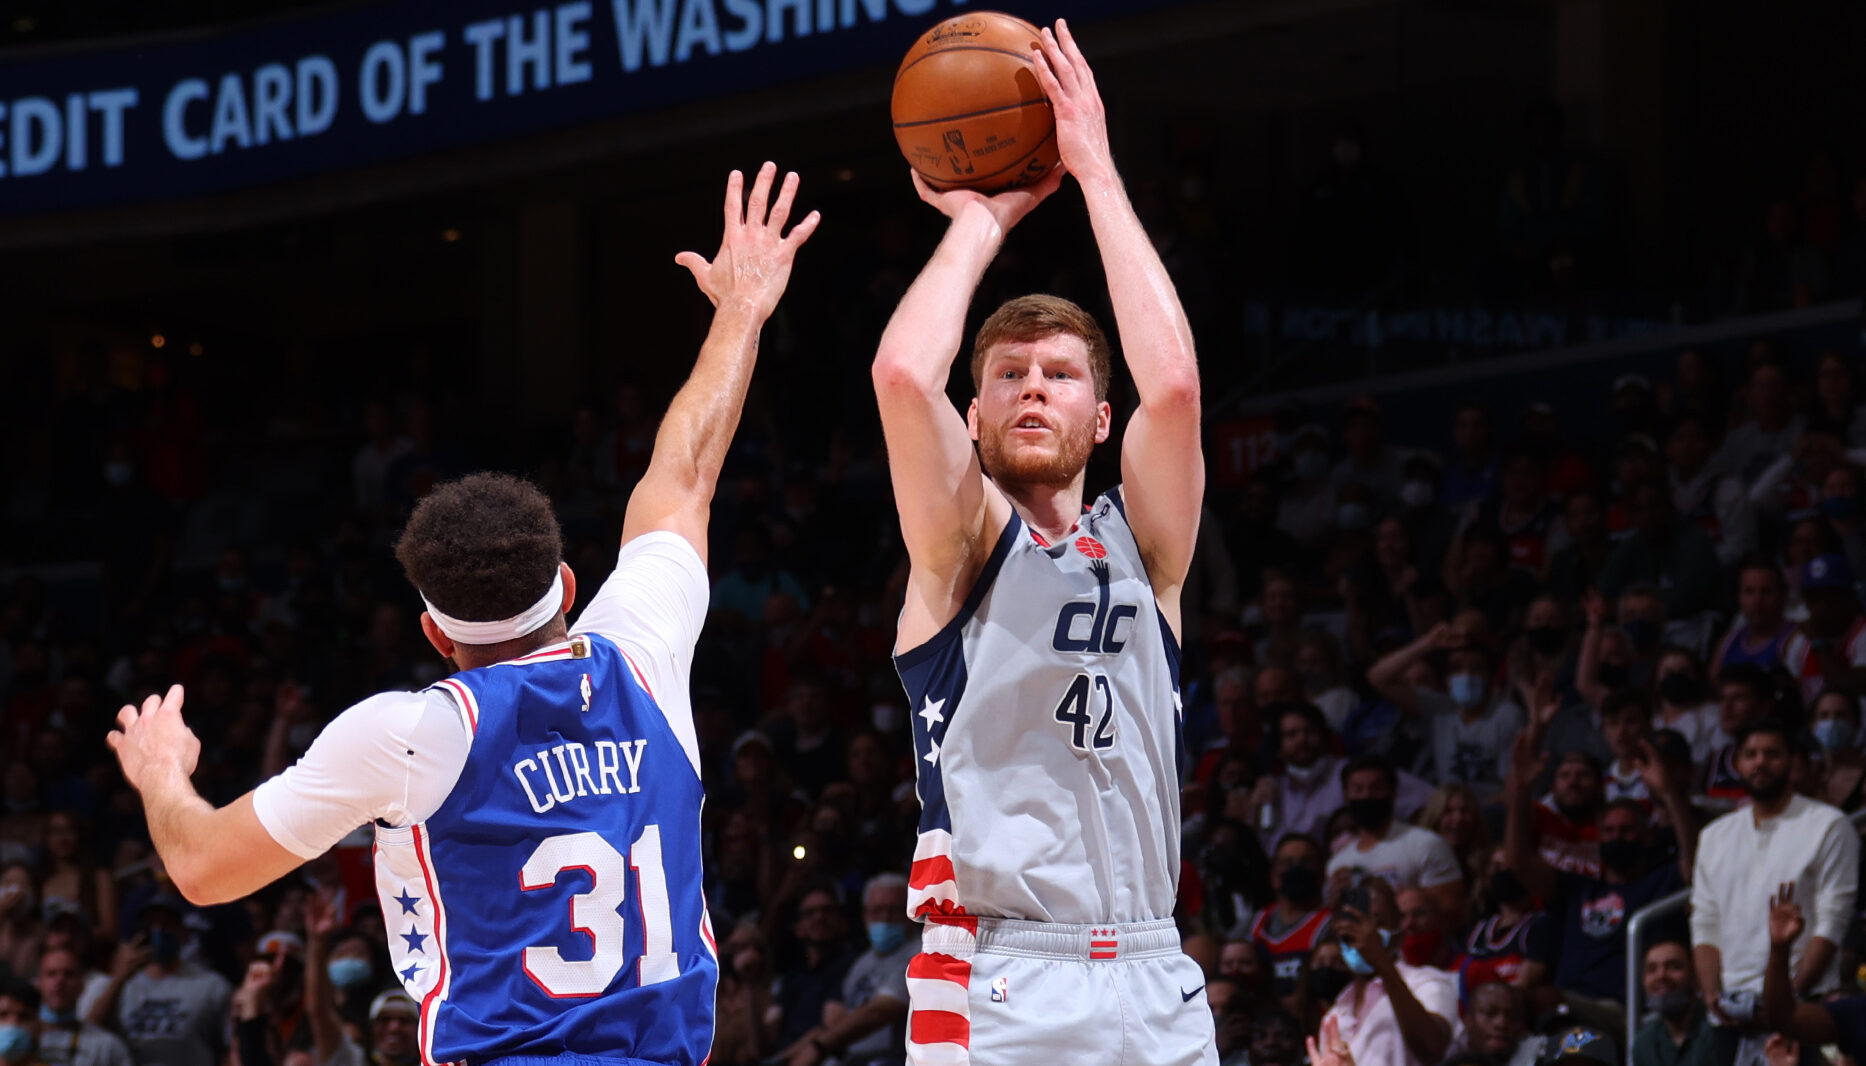 Wizards' Davis Bertans (calf) reportedly out 4-6 weeks